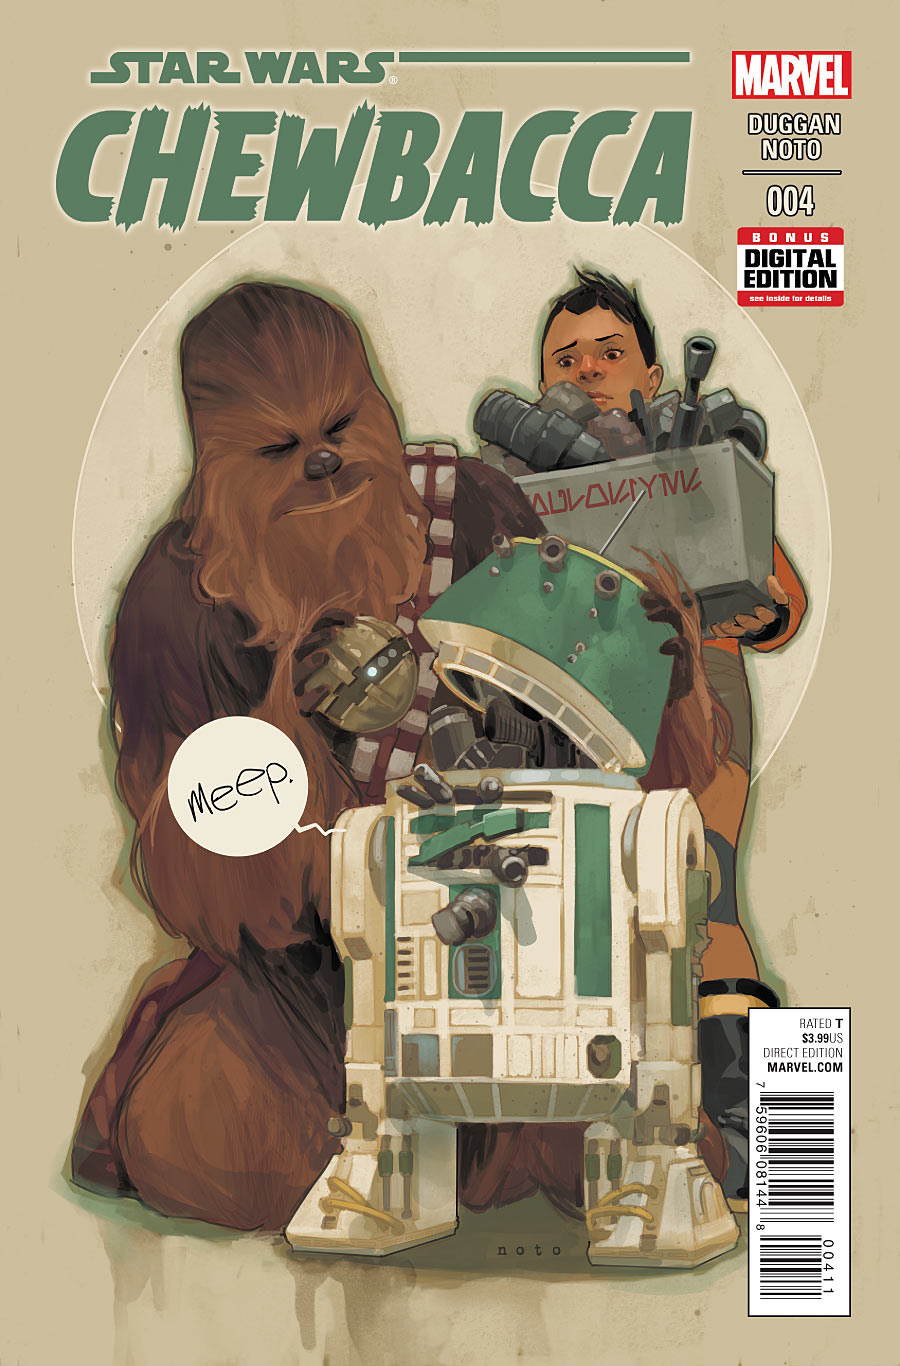 Star Wars - Chewbacca - Parte IV - Marvel Comics